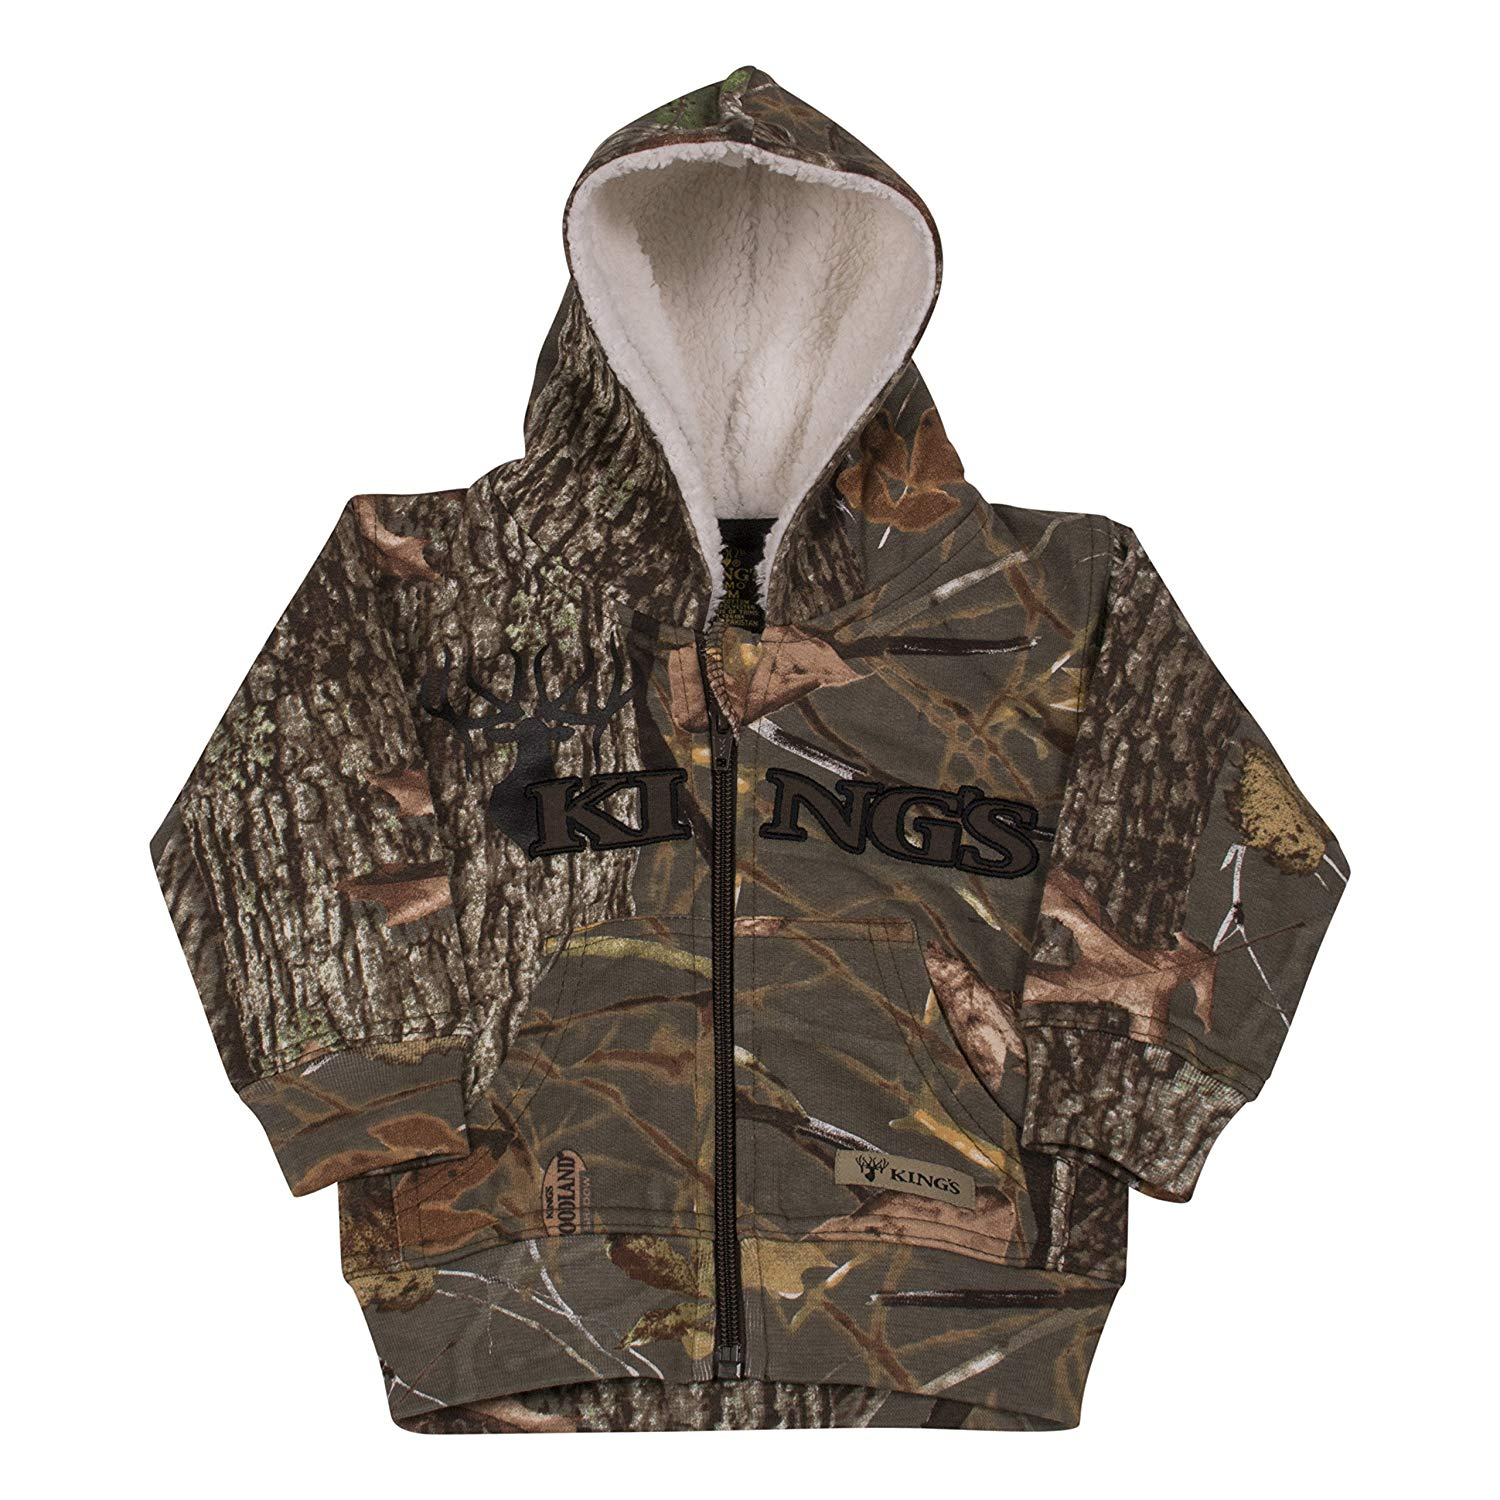 Kings Camo Infant Sherpa Zip Hoodie - Woodland Shadow Camo